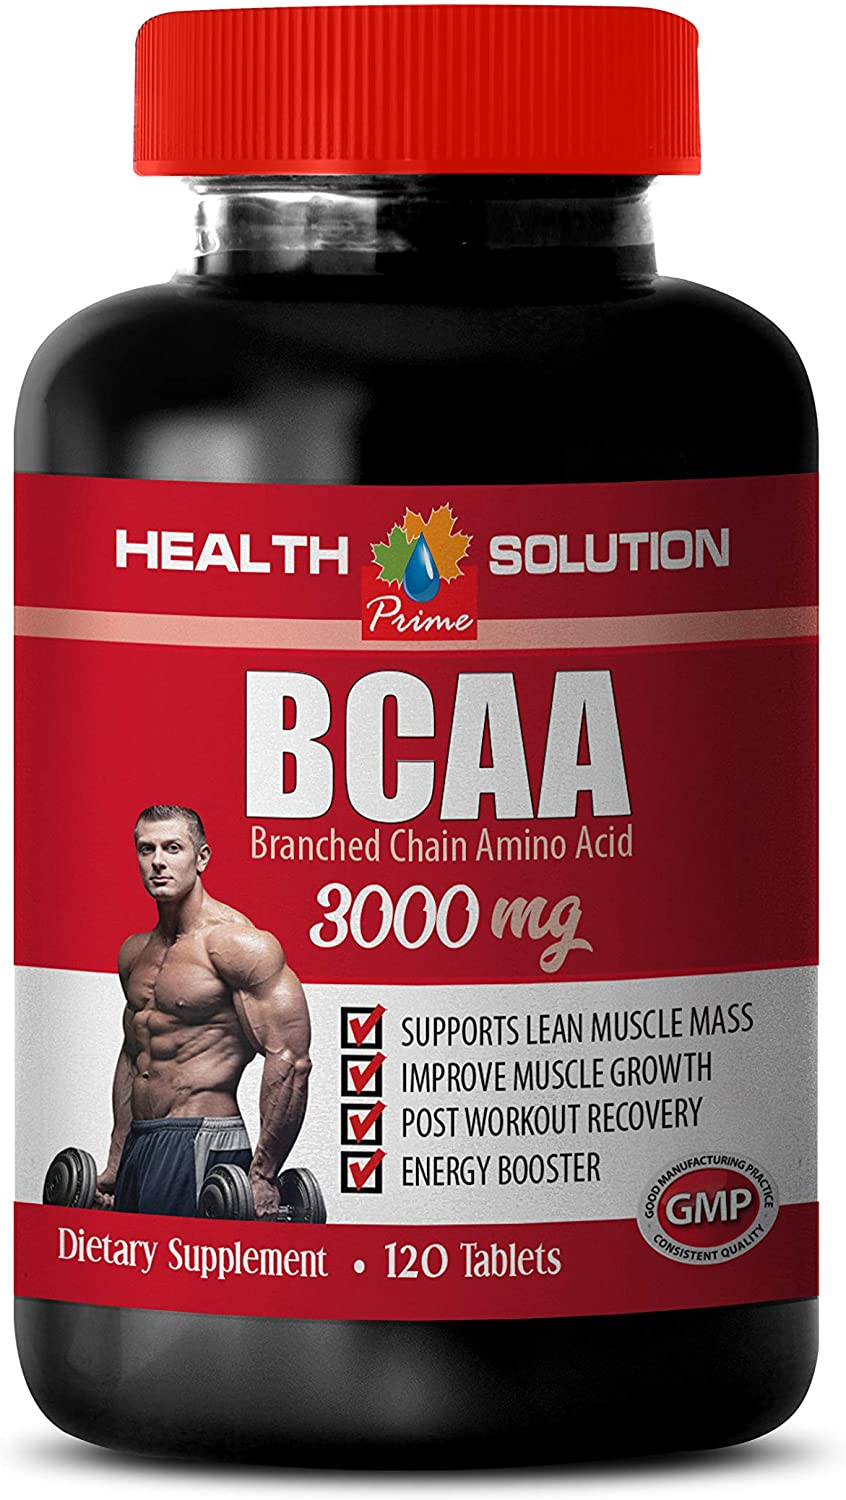 Muscle Growth Dietary Supplement Capsules - BCAA 3000 MG - bcaa Weight Loss Women - 1 Bottle 120 Tablets